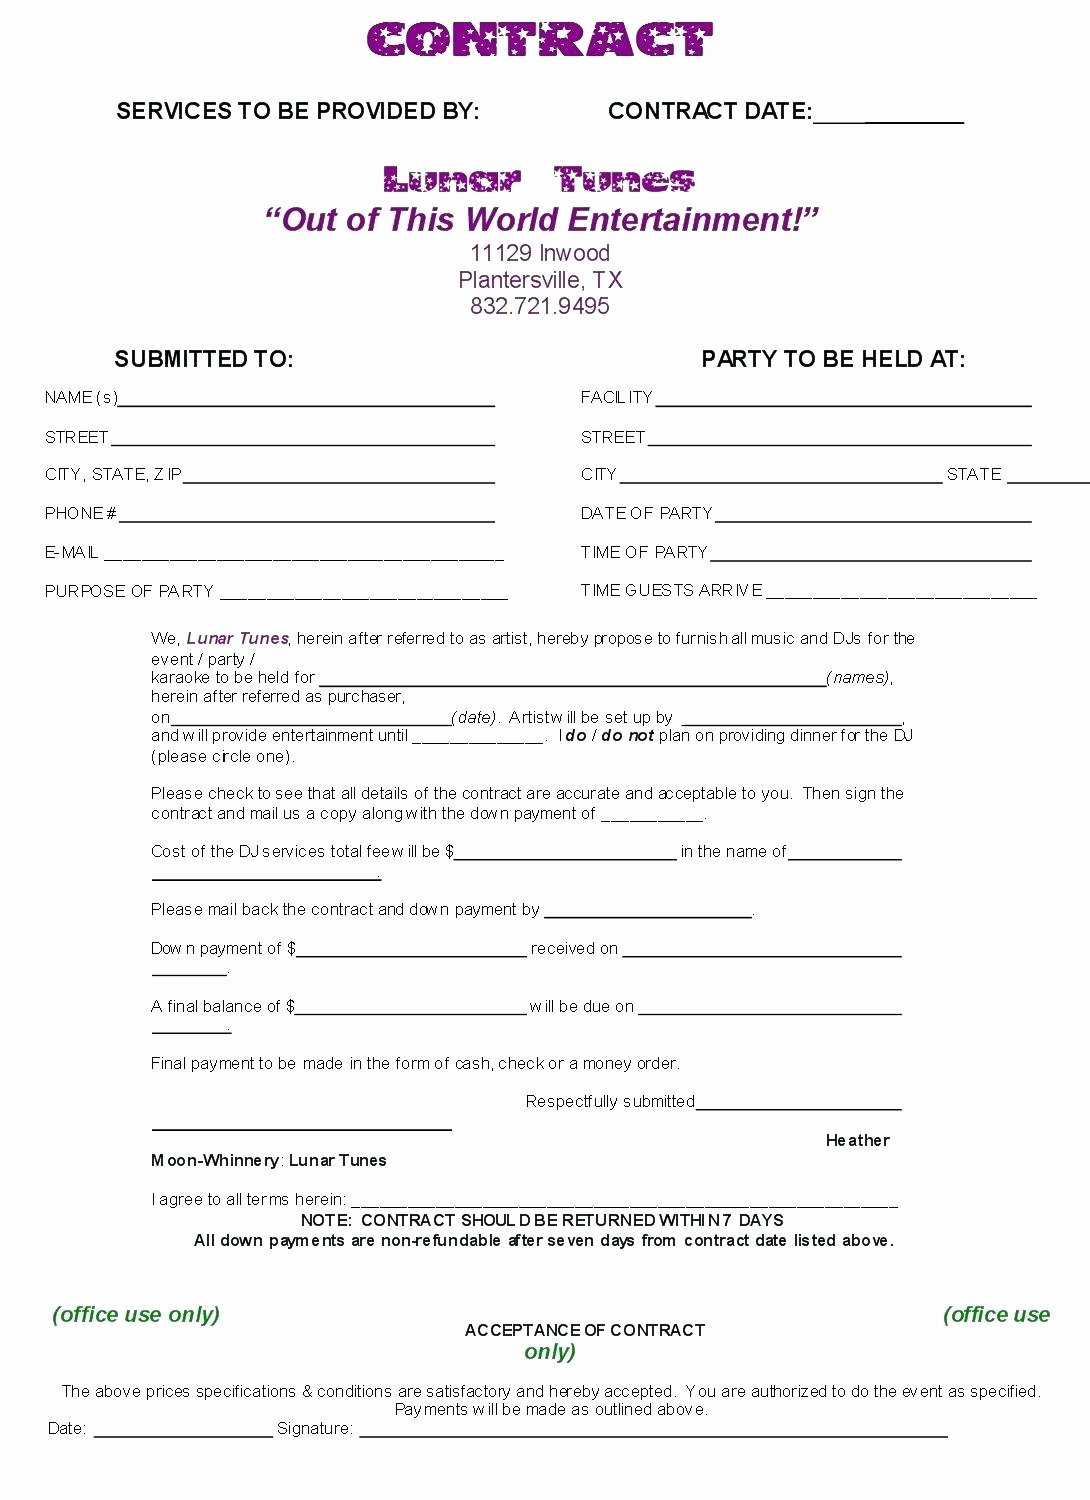 Shared Services Agreement Template Fresh Template D Service Agreement Template